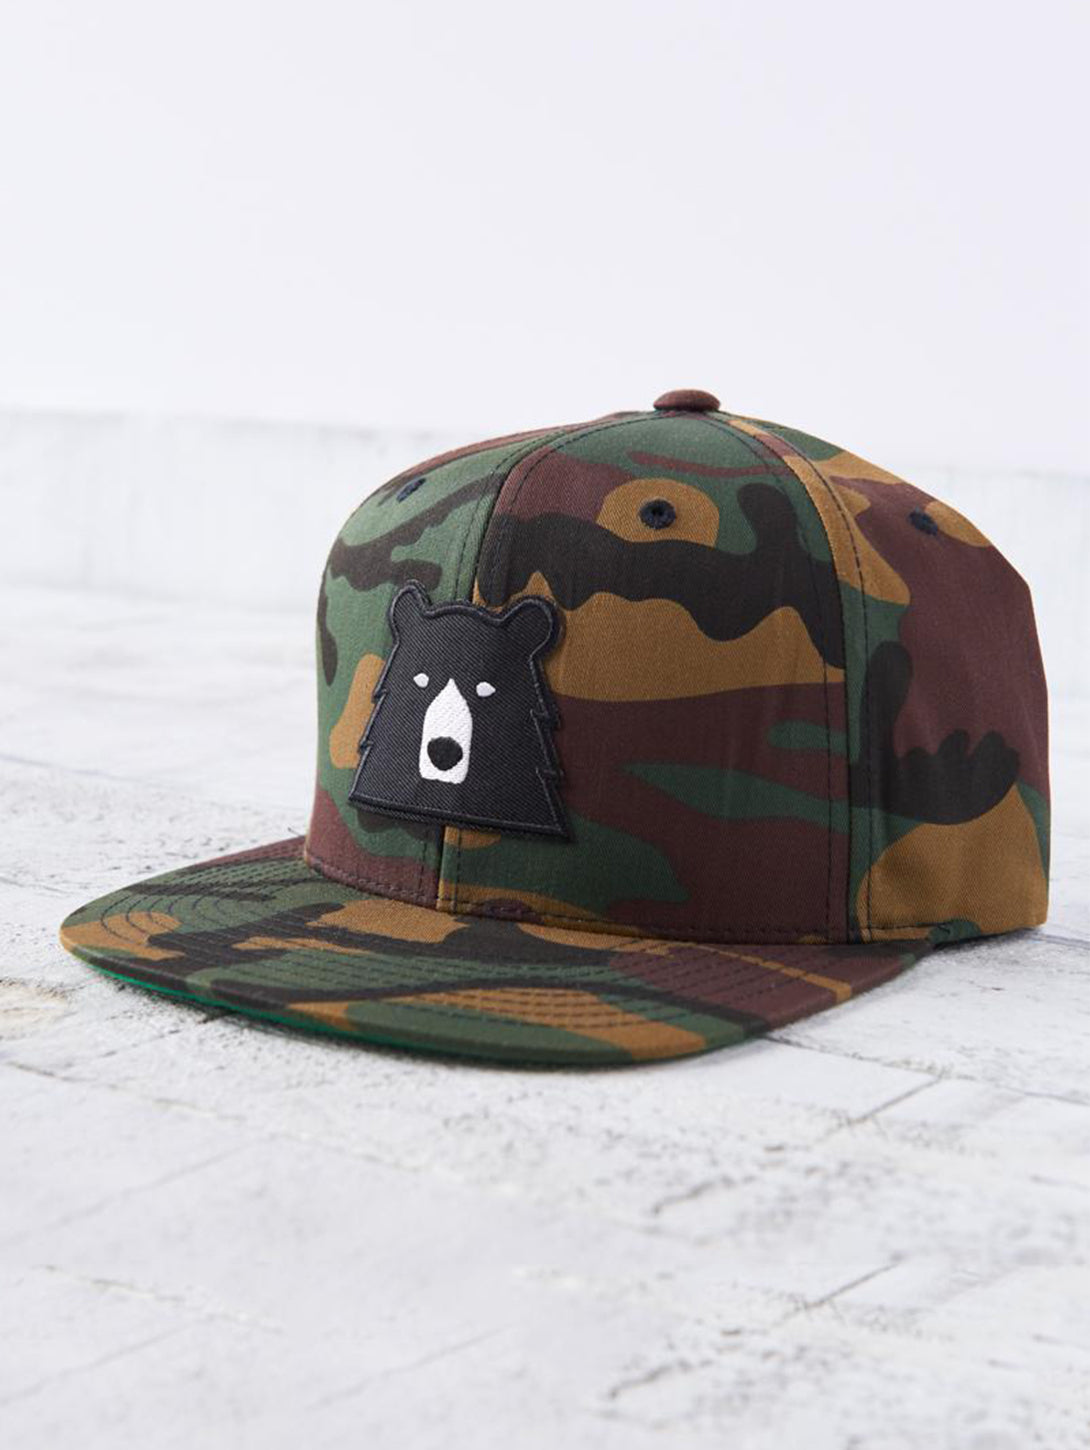 Melton Snapback Hat - Camo with Black Bear-North Standard Trading Post-Over the Rainbow